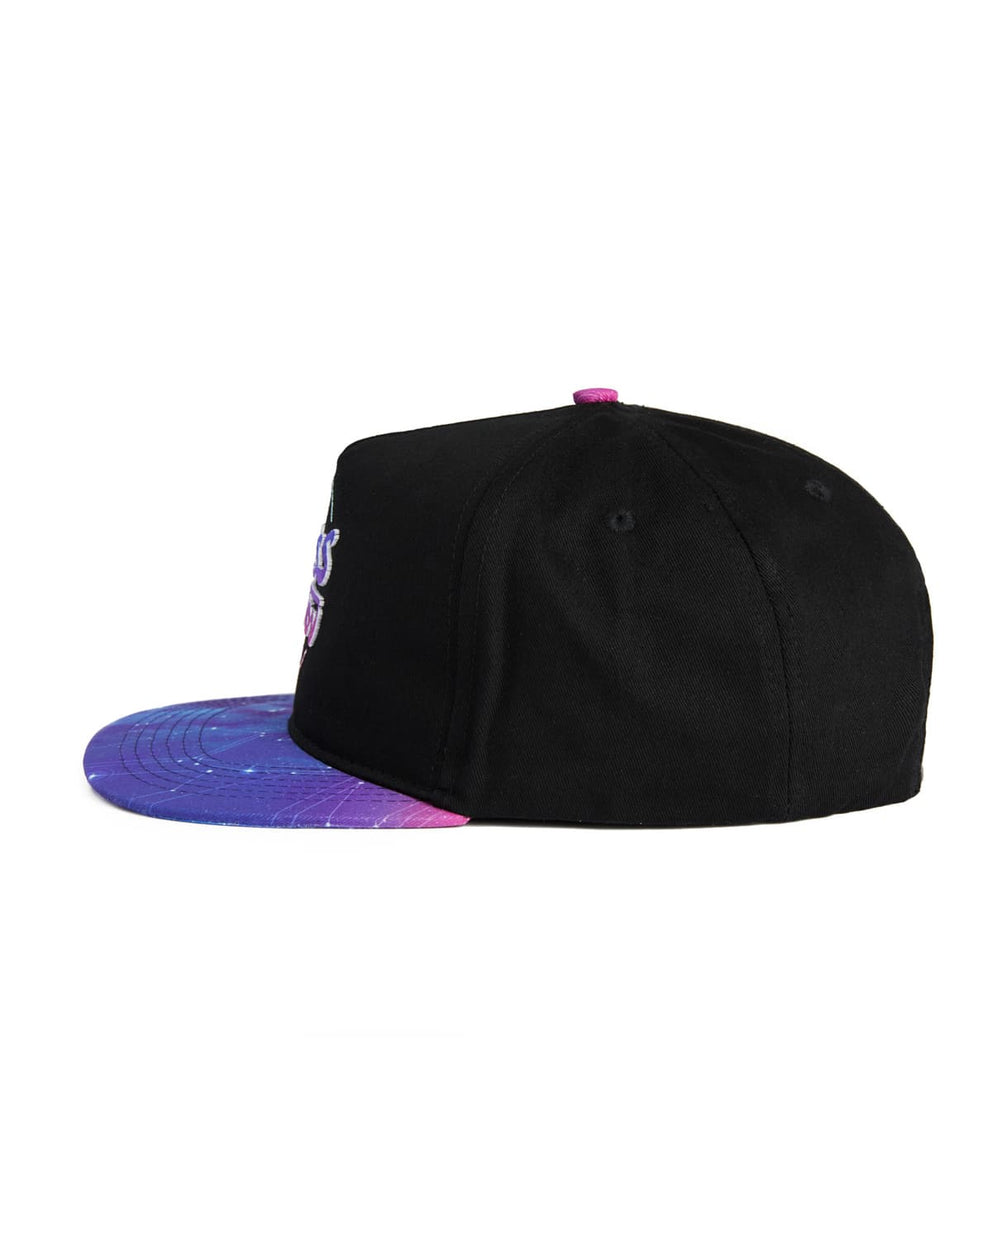 Bass Canyon 'Constellations' Snapback - Black/Purple